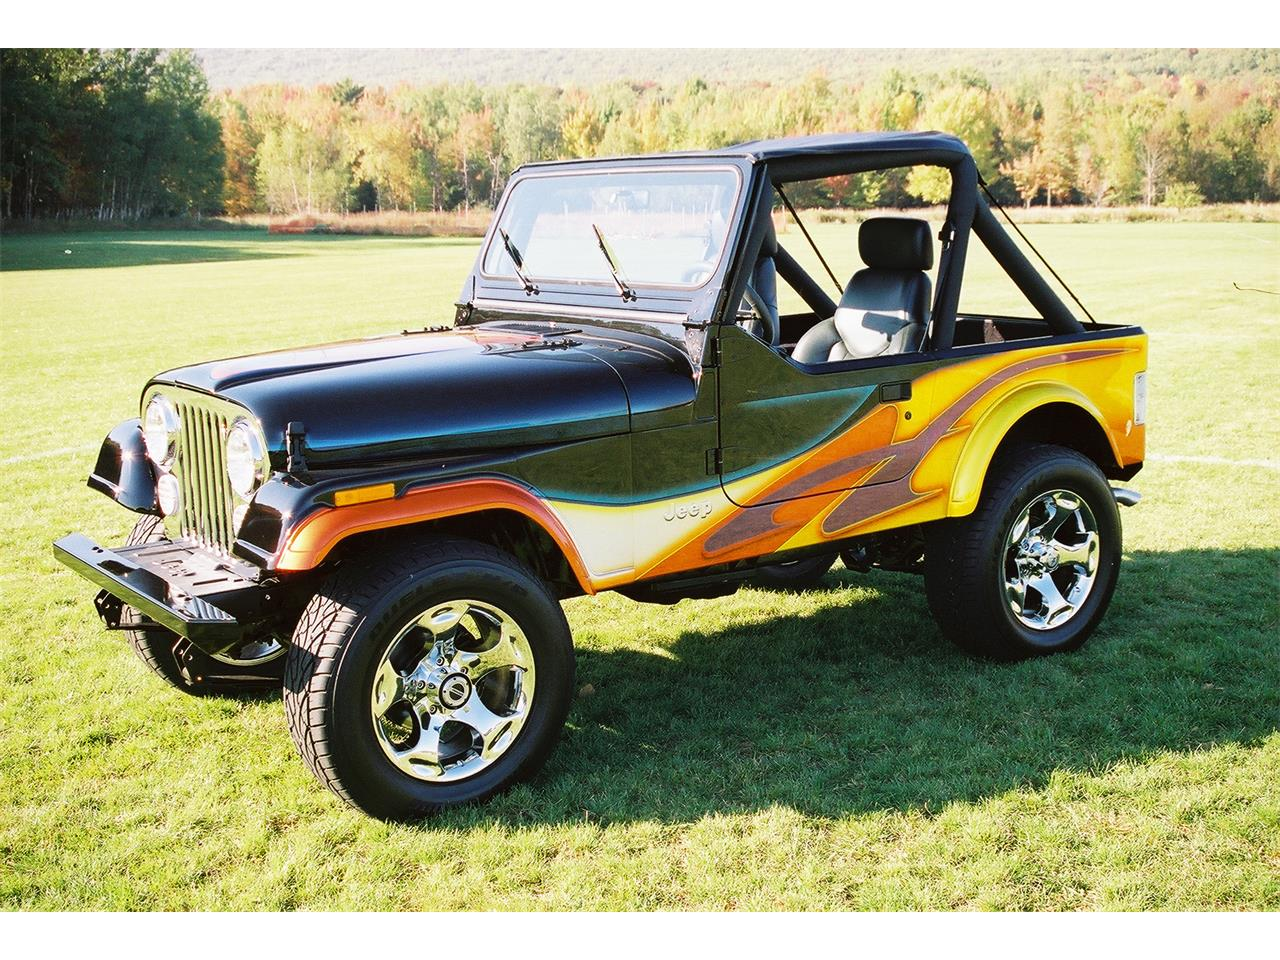 Large Picture of '83 CJ7 located in Wausau Wisconsin - $29,500.00 Offered by a Private Seller - KPJM